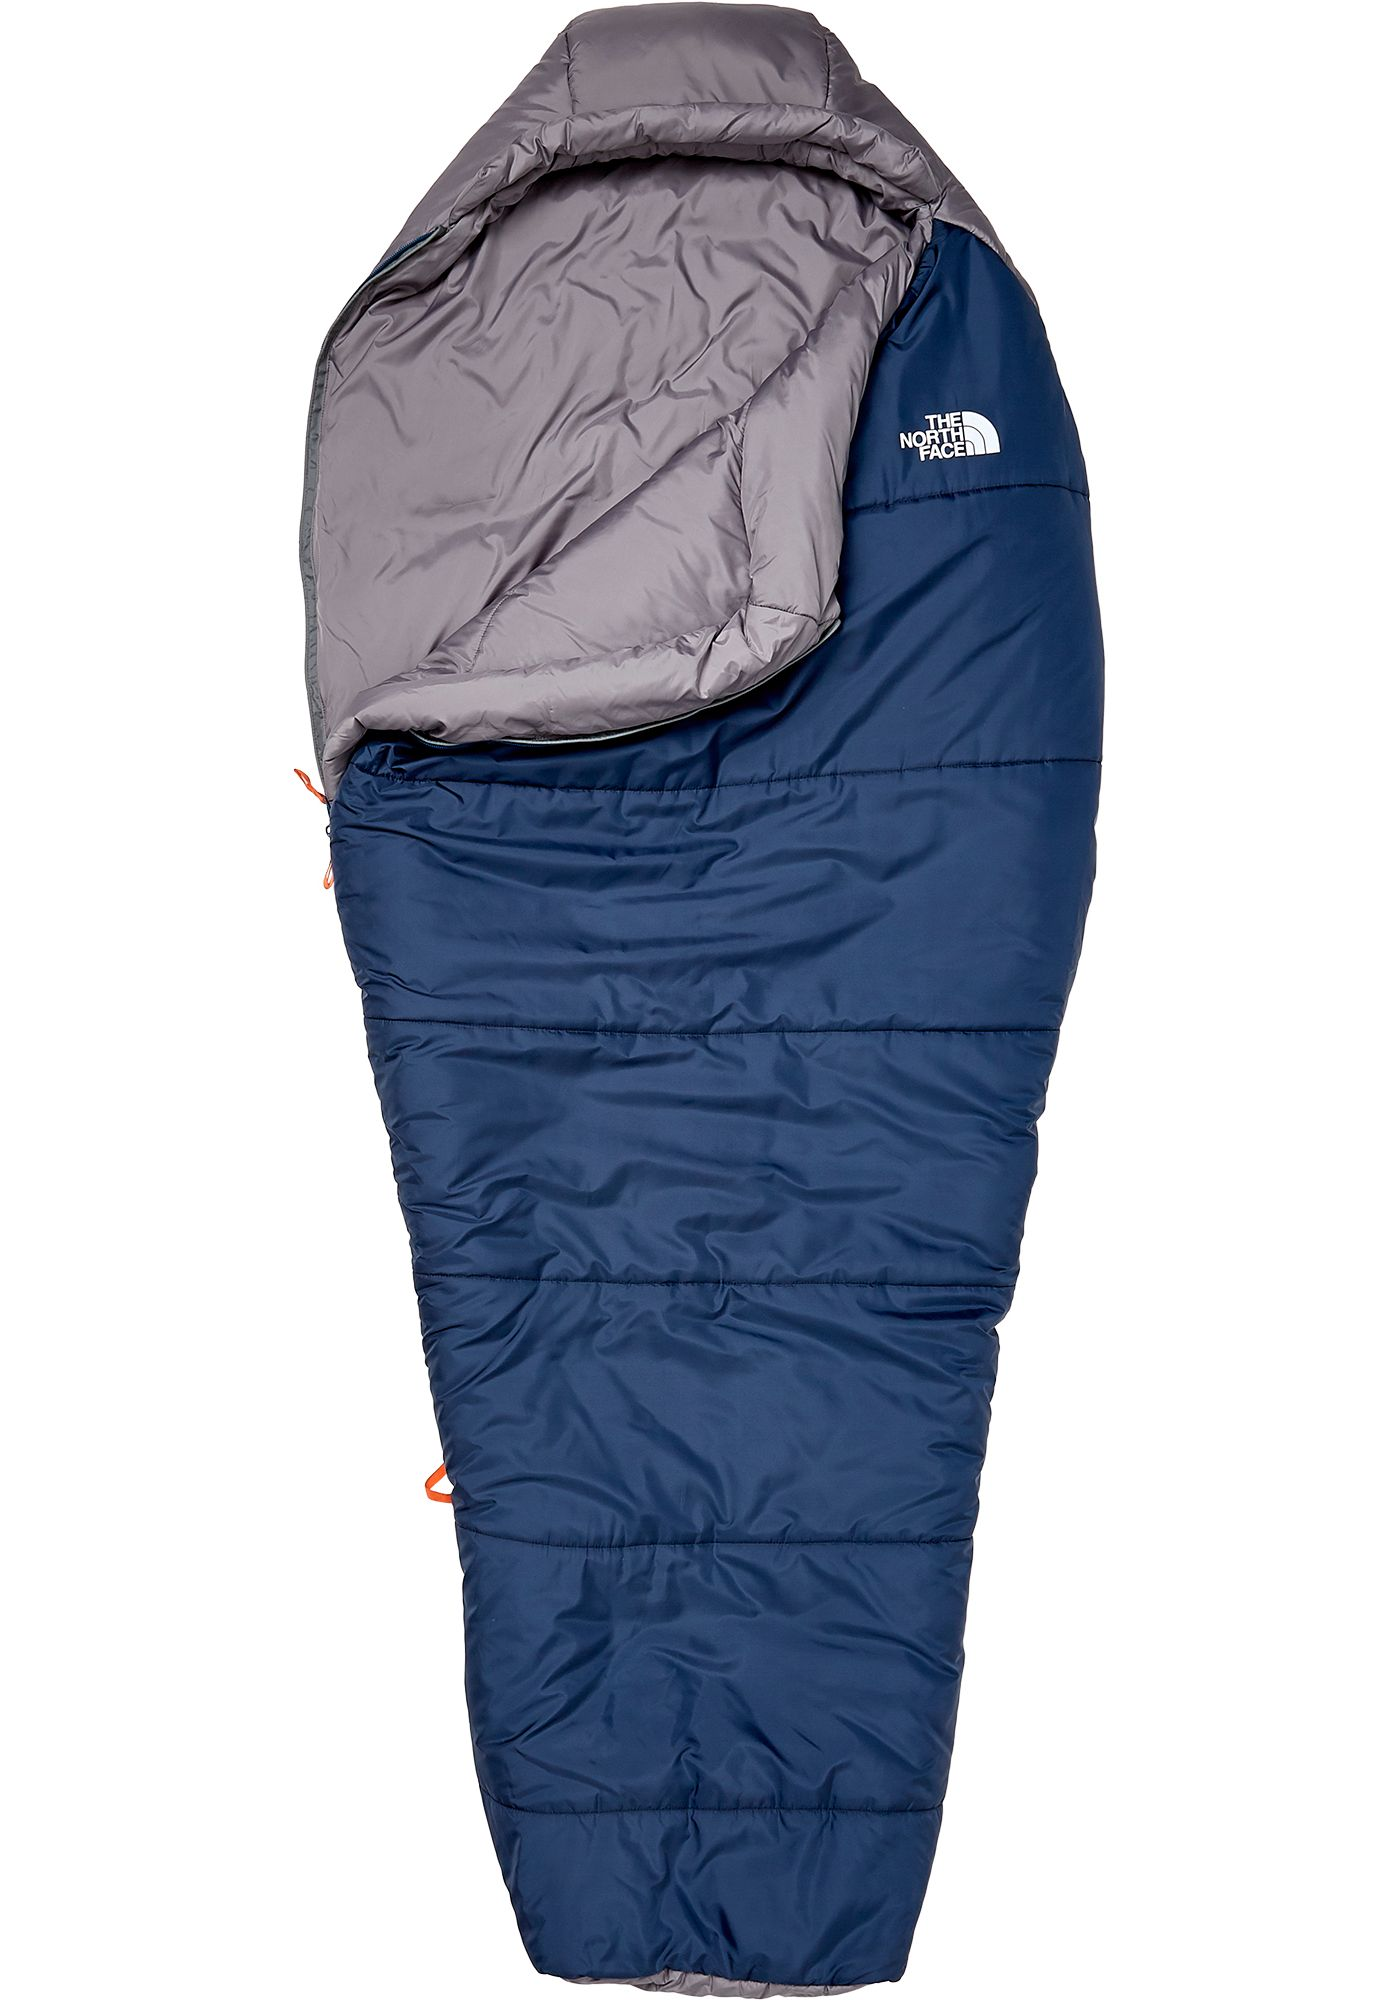 The North Face Youth Wasatch 20° Sleeping Bag - Prior Season